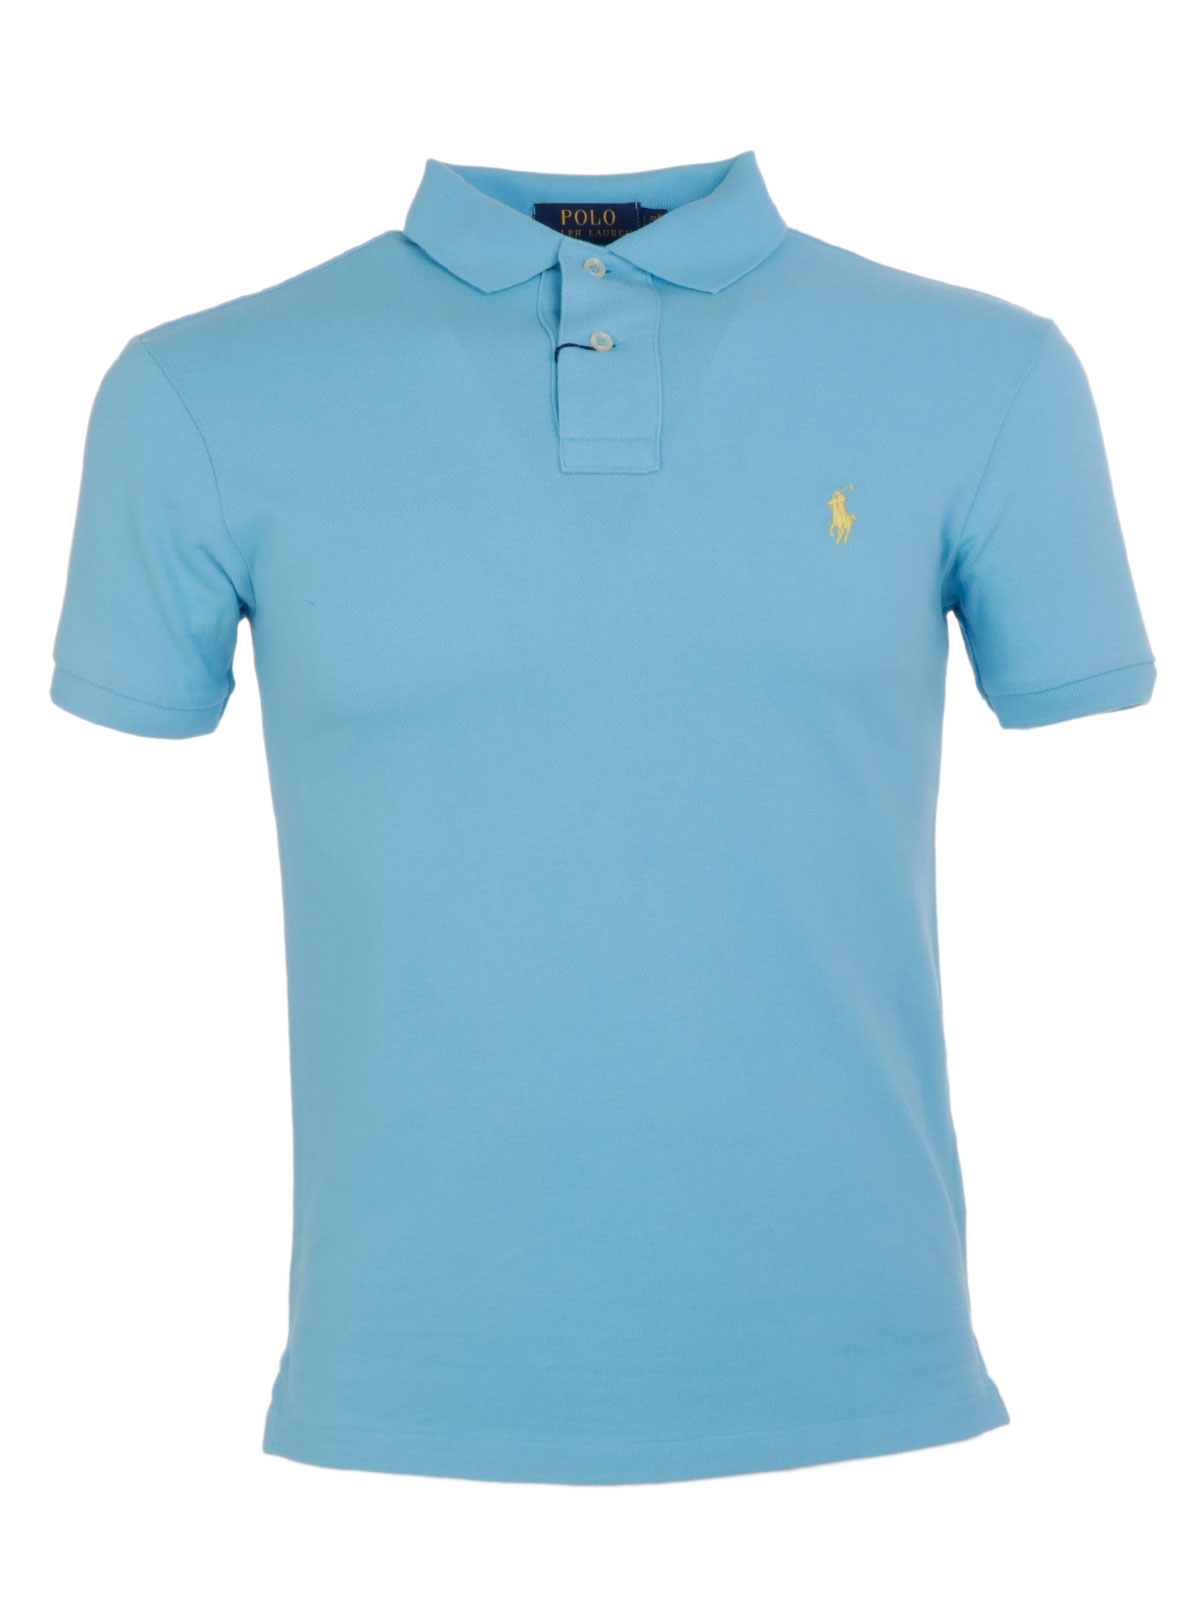 best service be86d db805 POLO RALPH LAUREN Men's Slim Fit Polo Shirt